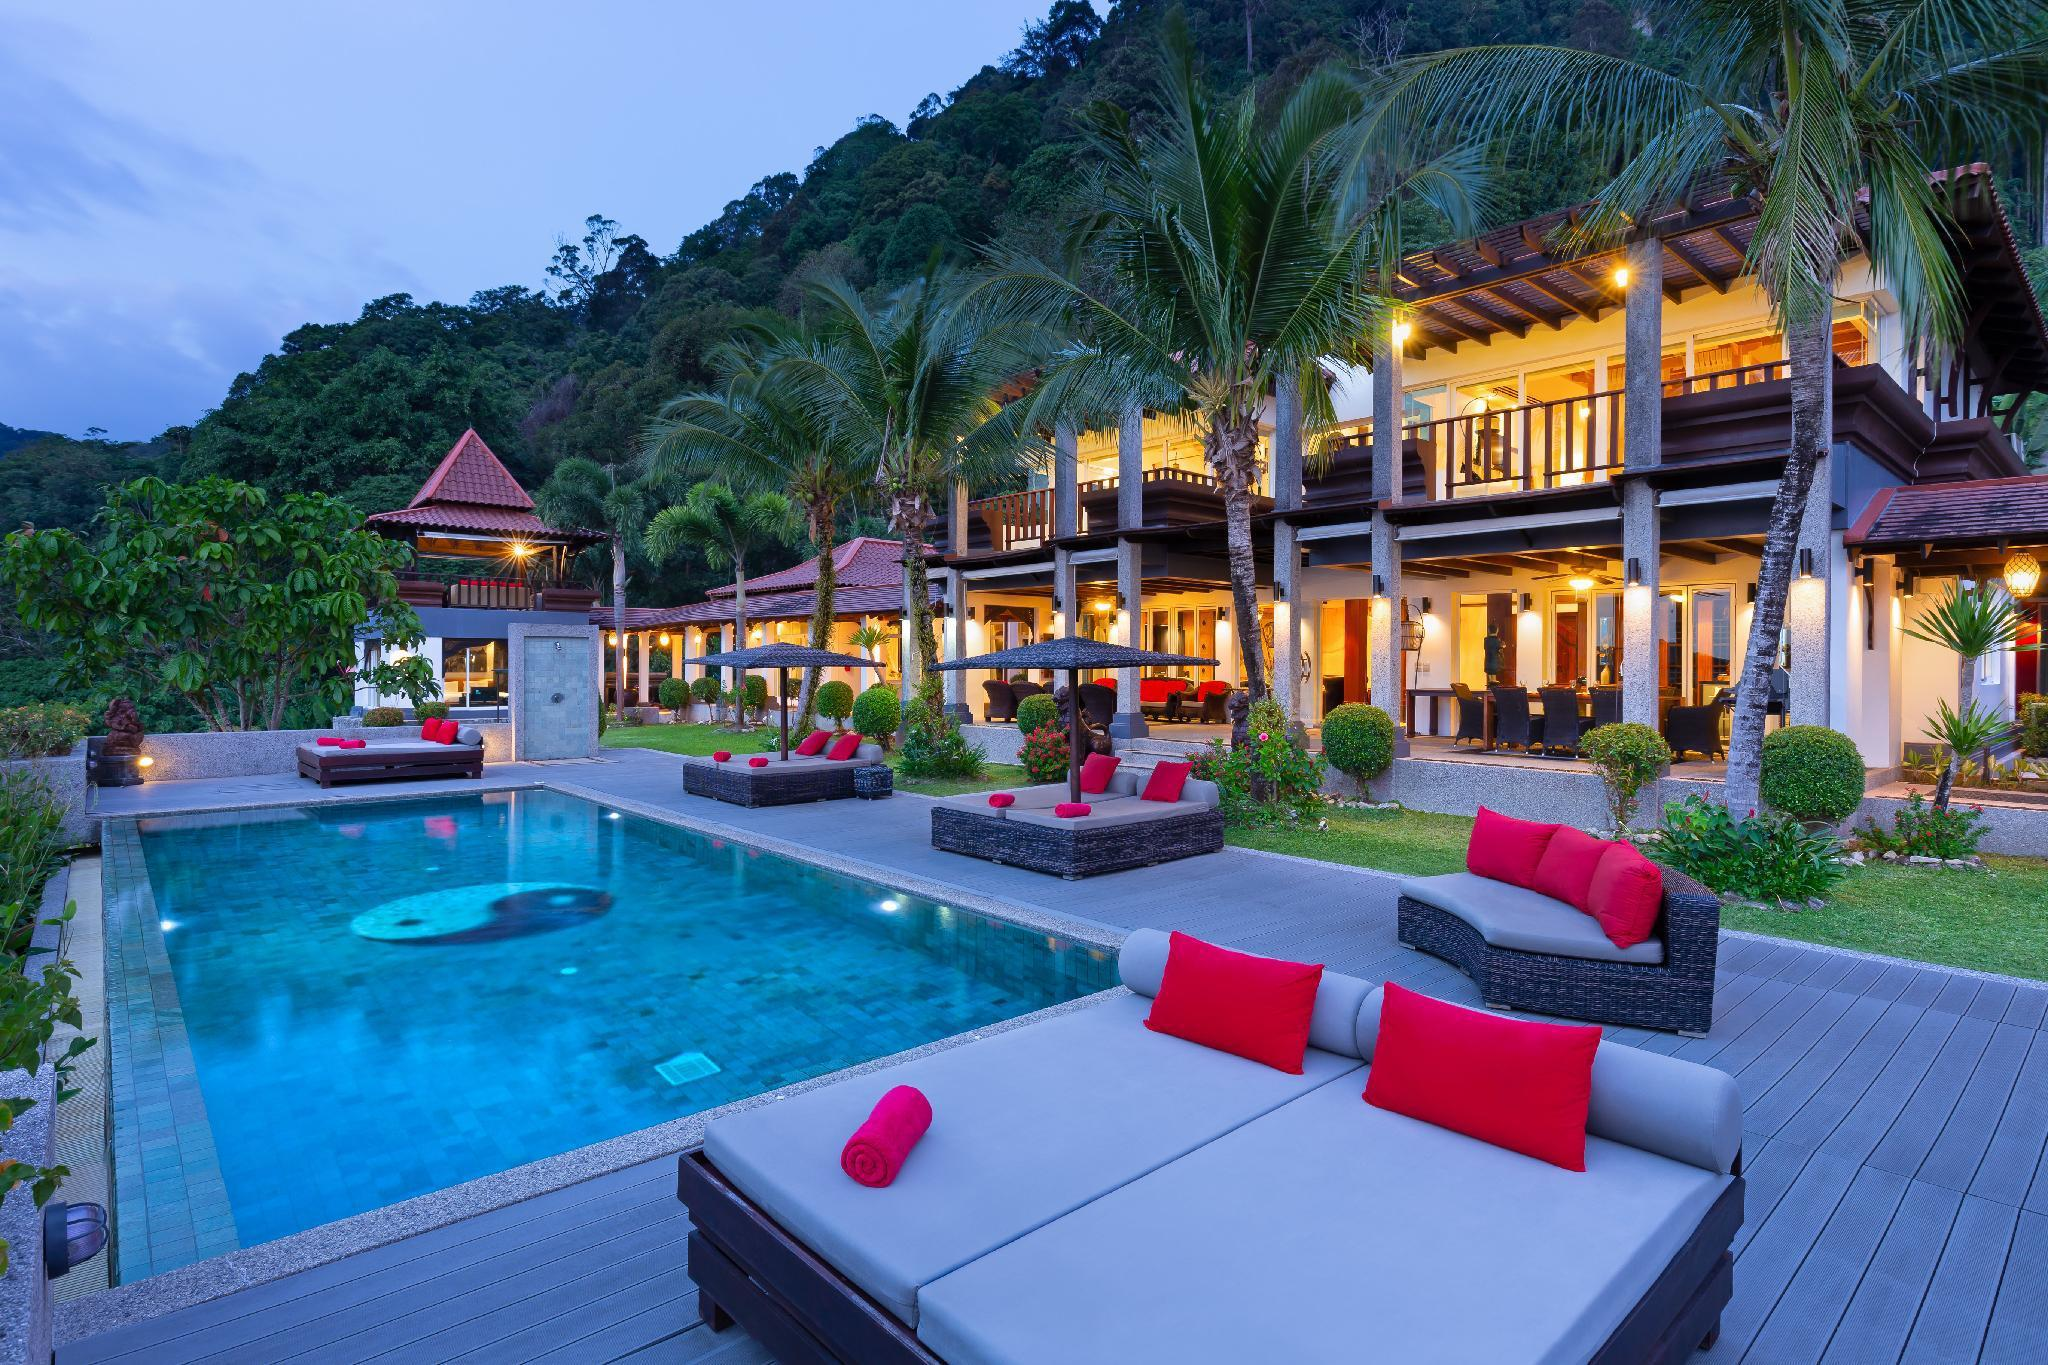 Remarkable Boutique Villa in Patong, full SEAVIEW Remarkable Boutique Villa in Patong, full SEAVIEW